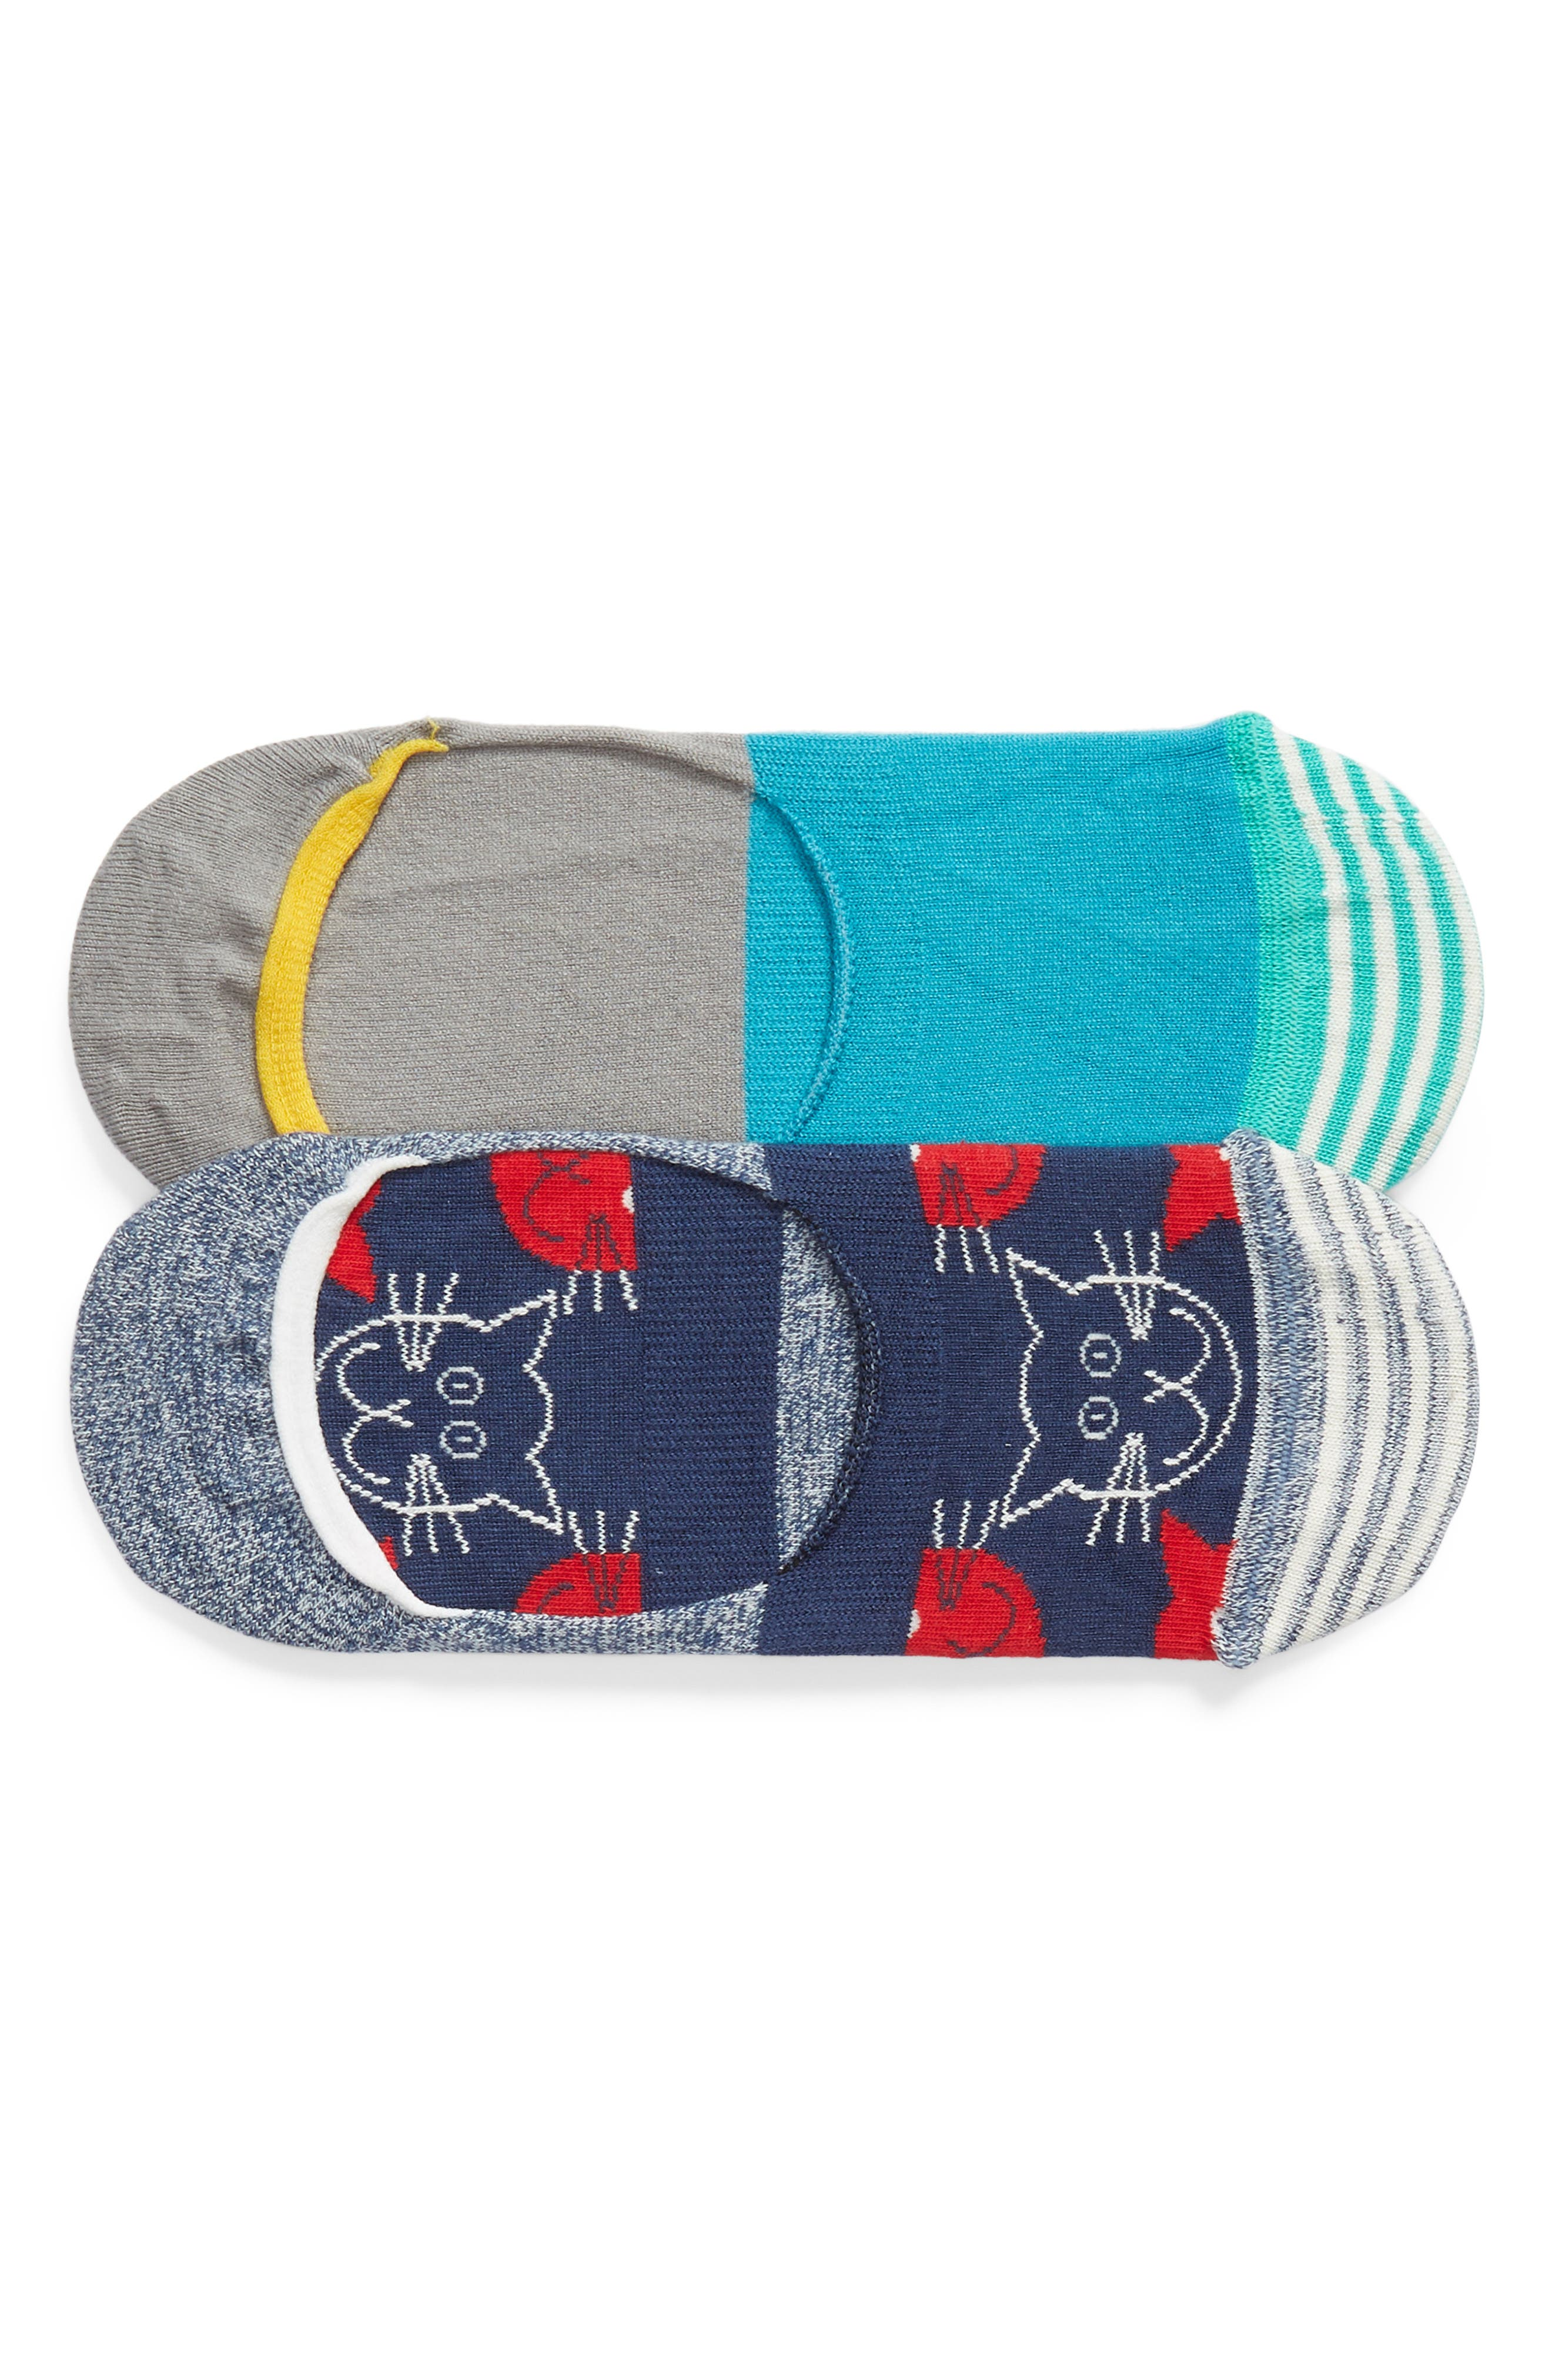 Cats Assorted 2-Pack No-Show Socks,                             Main thumbnail 1, color,                             459